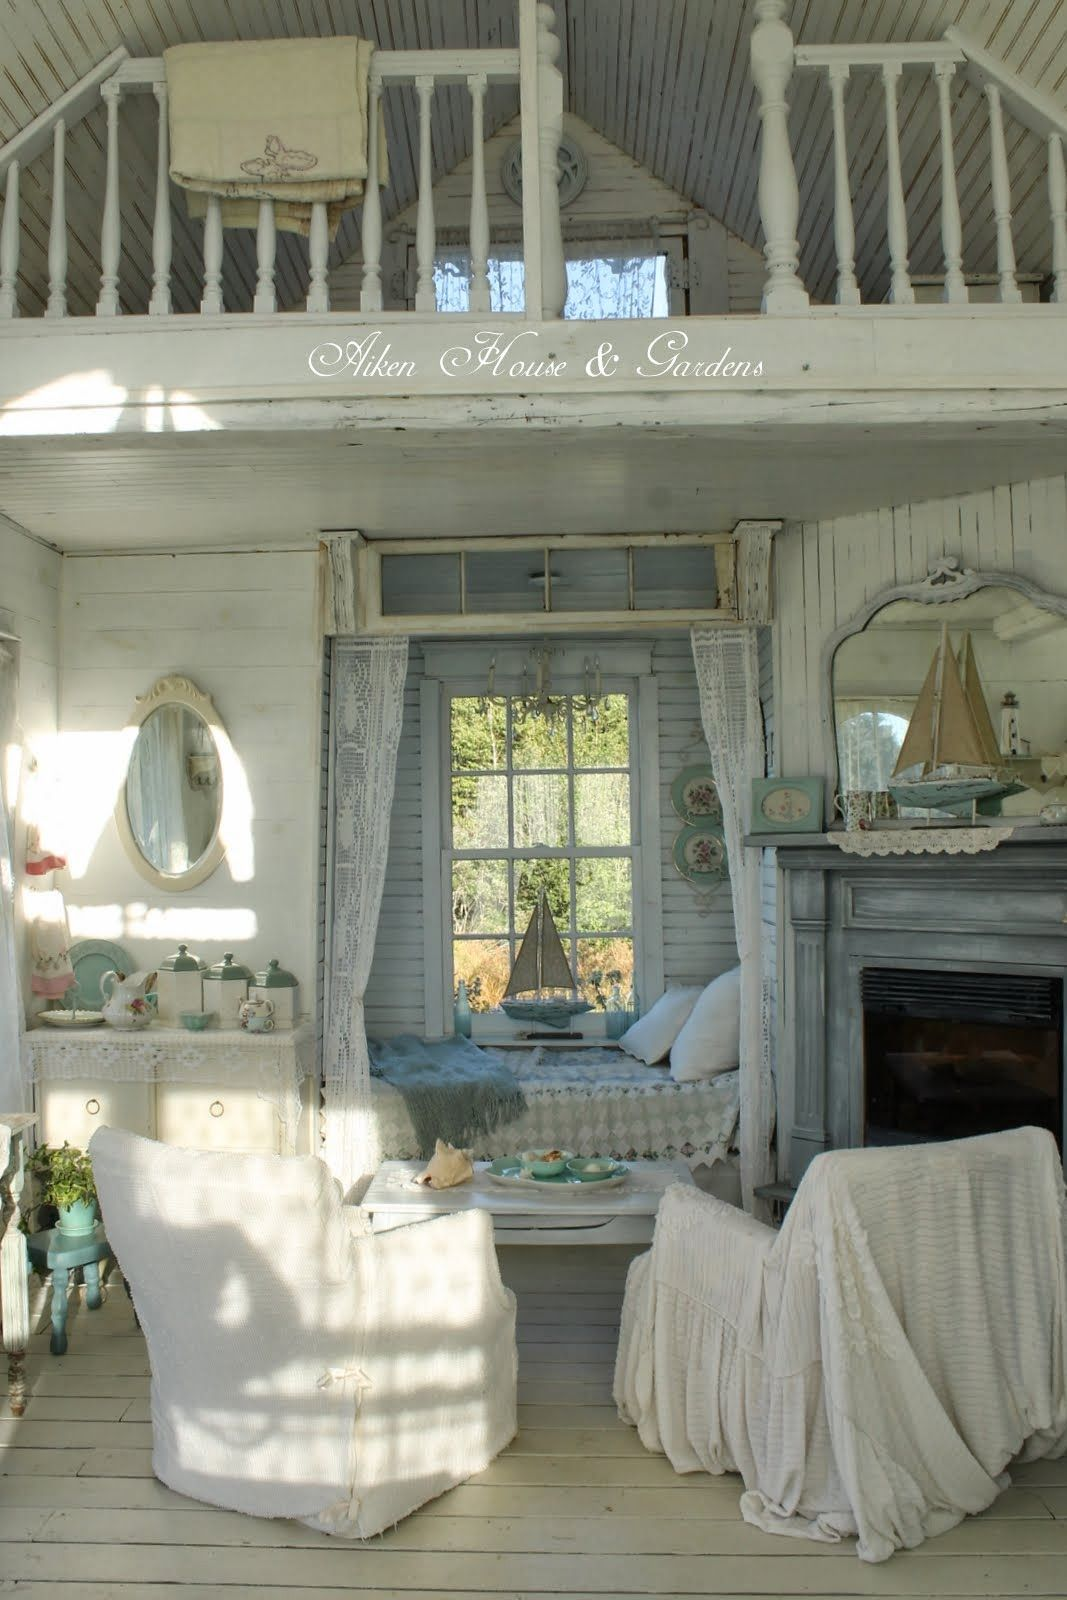 Aiken House & Gardens: The Boathouse....there's something about shabby chic...